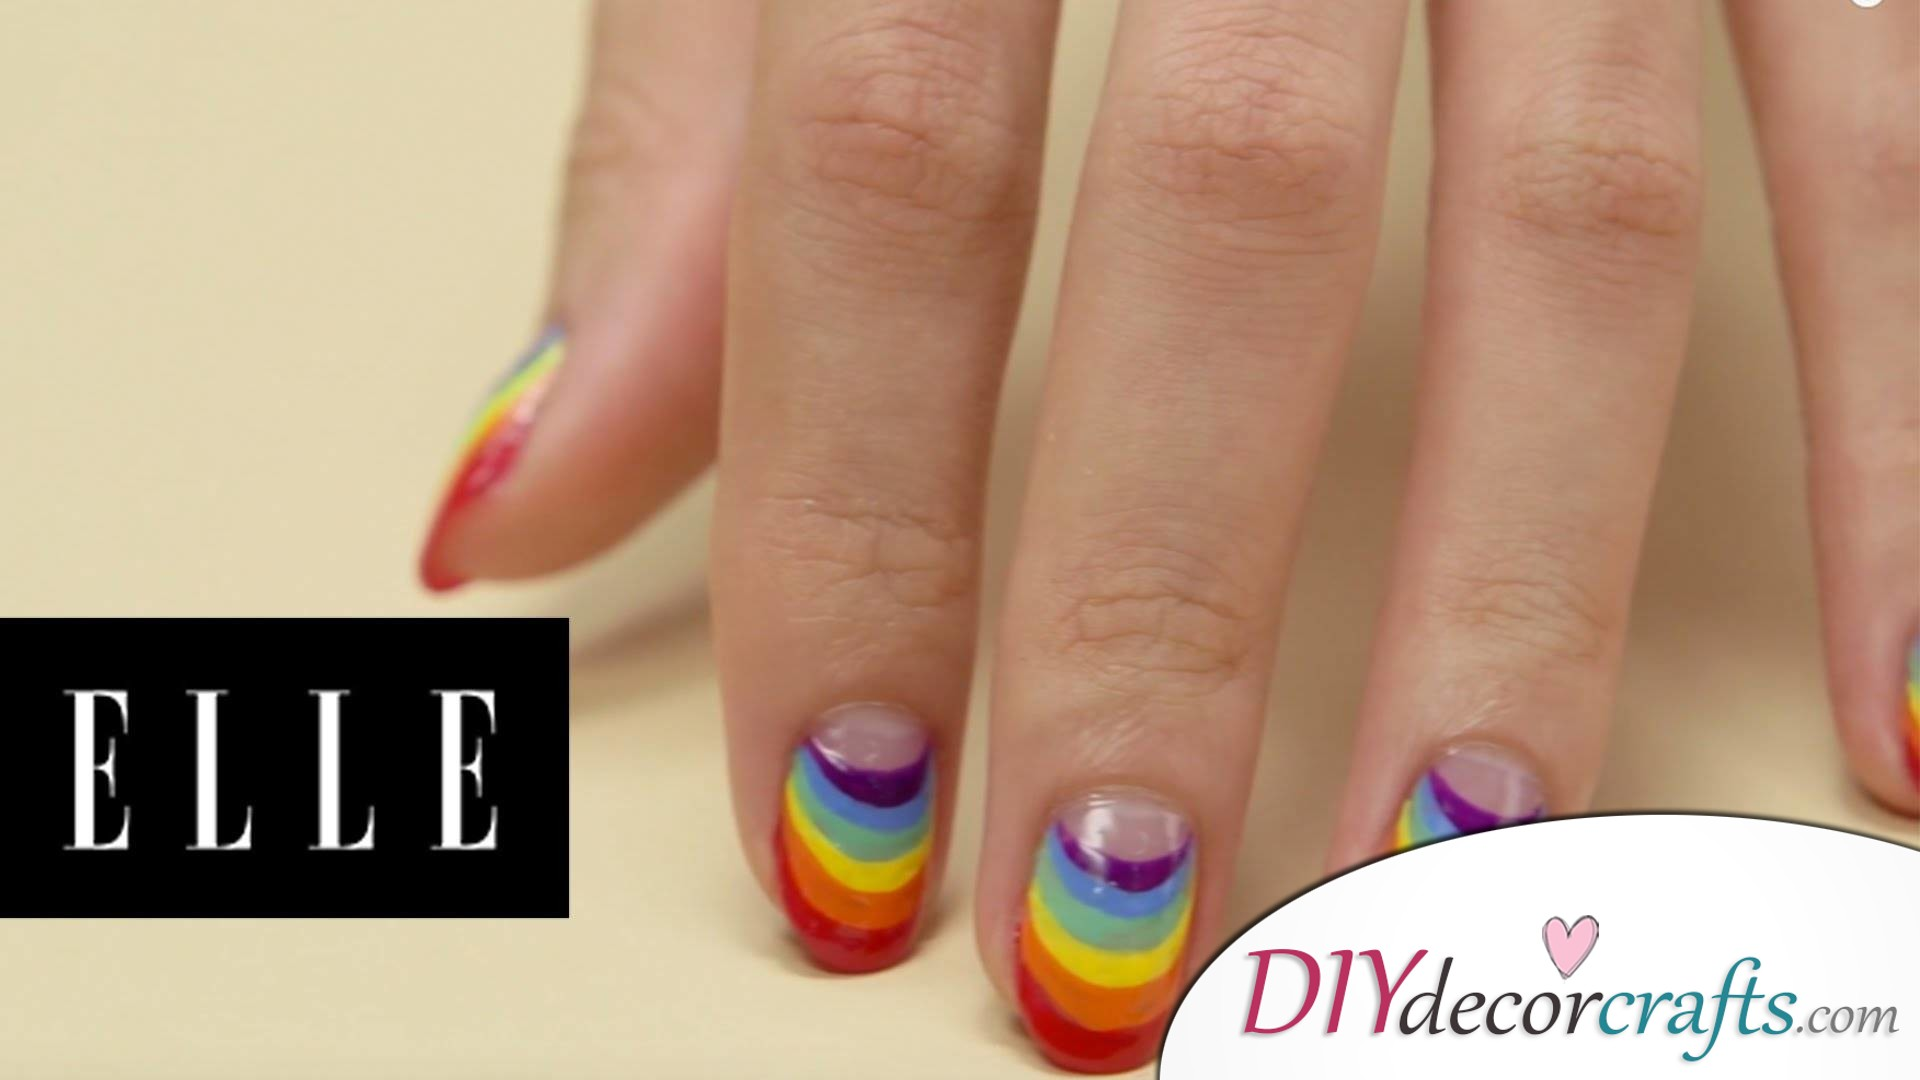 15 Trendy And Amazing Nail Designs Perfect For The Summer, Pride Rainbow